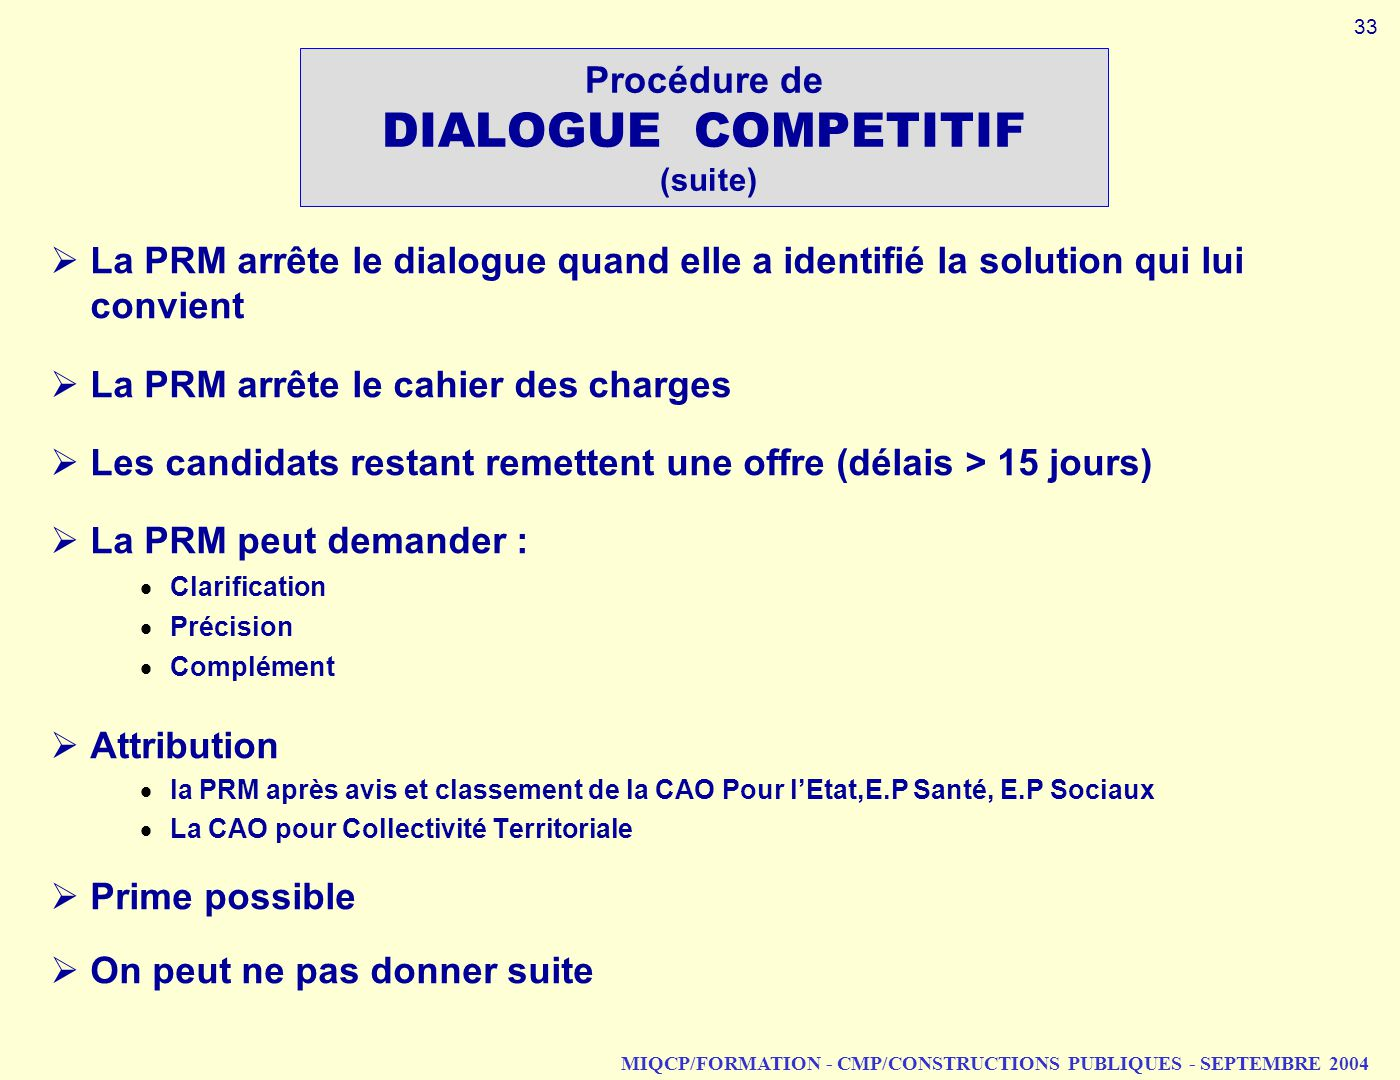 Procédure de DIALOGUE COMPETITIF (suite)